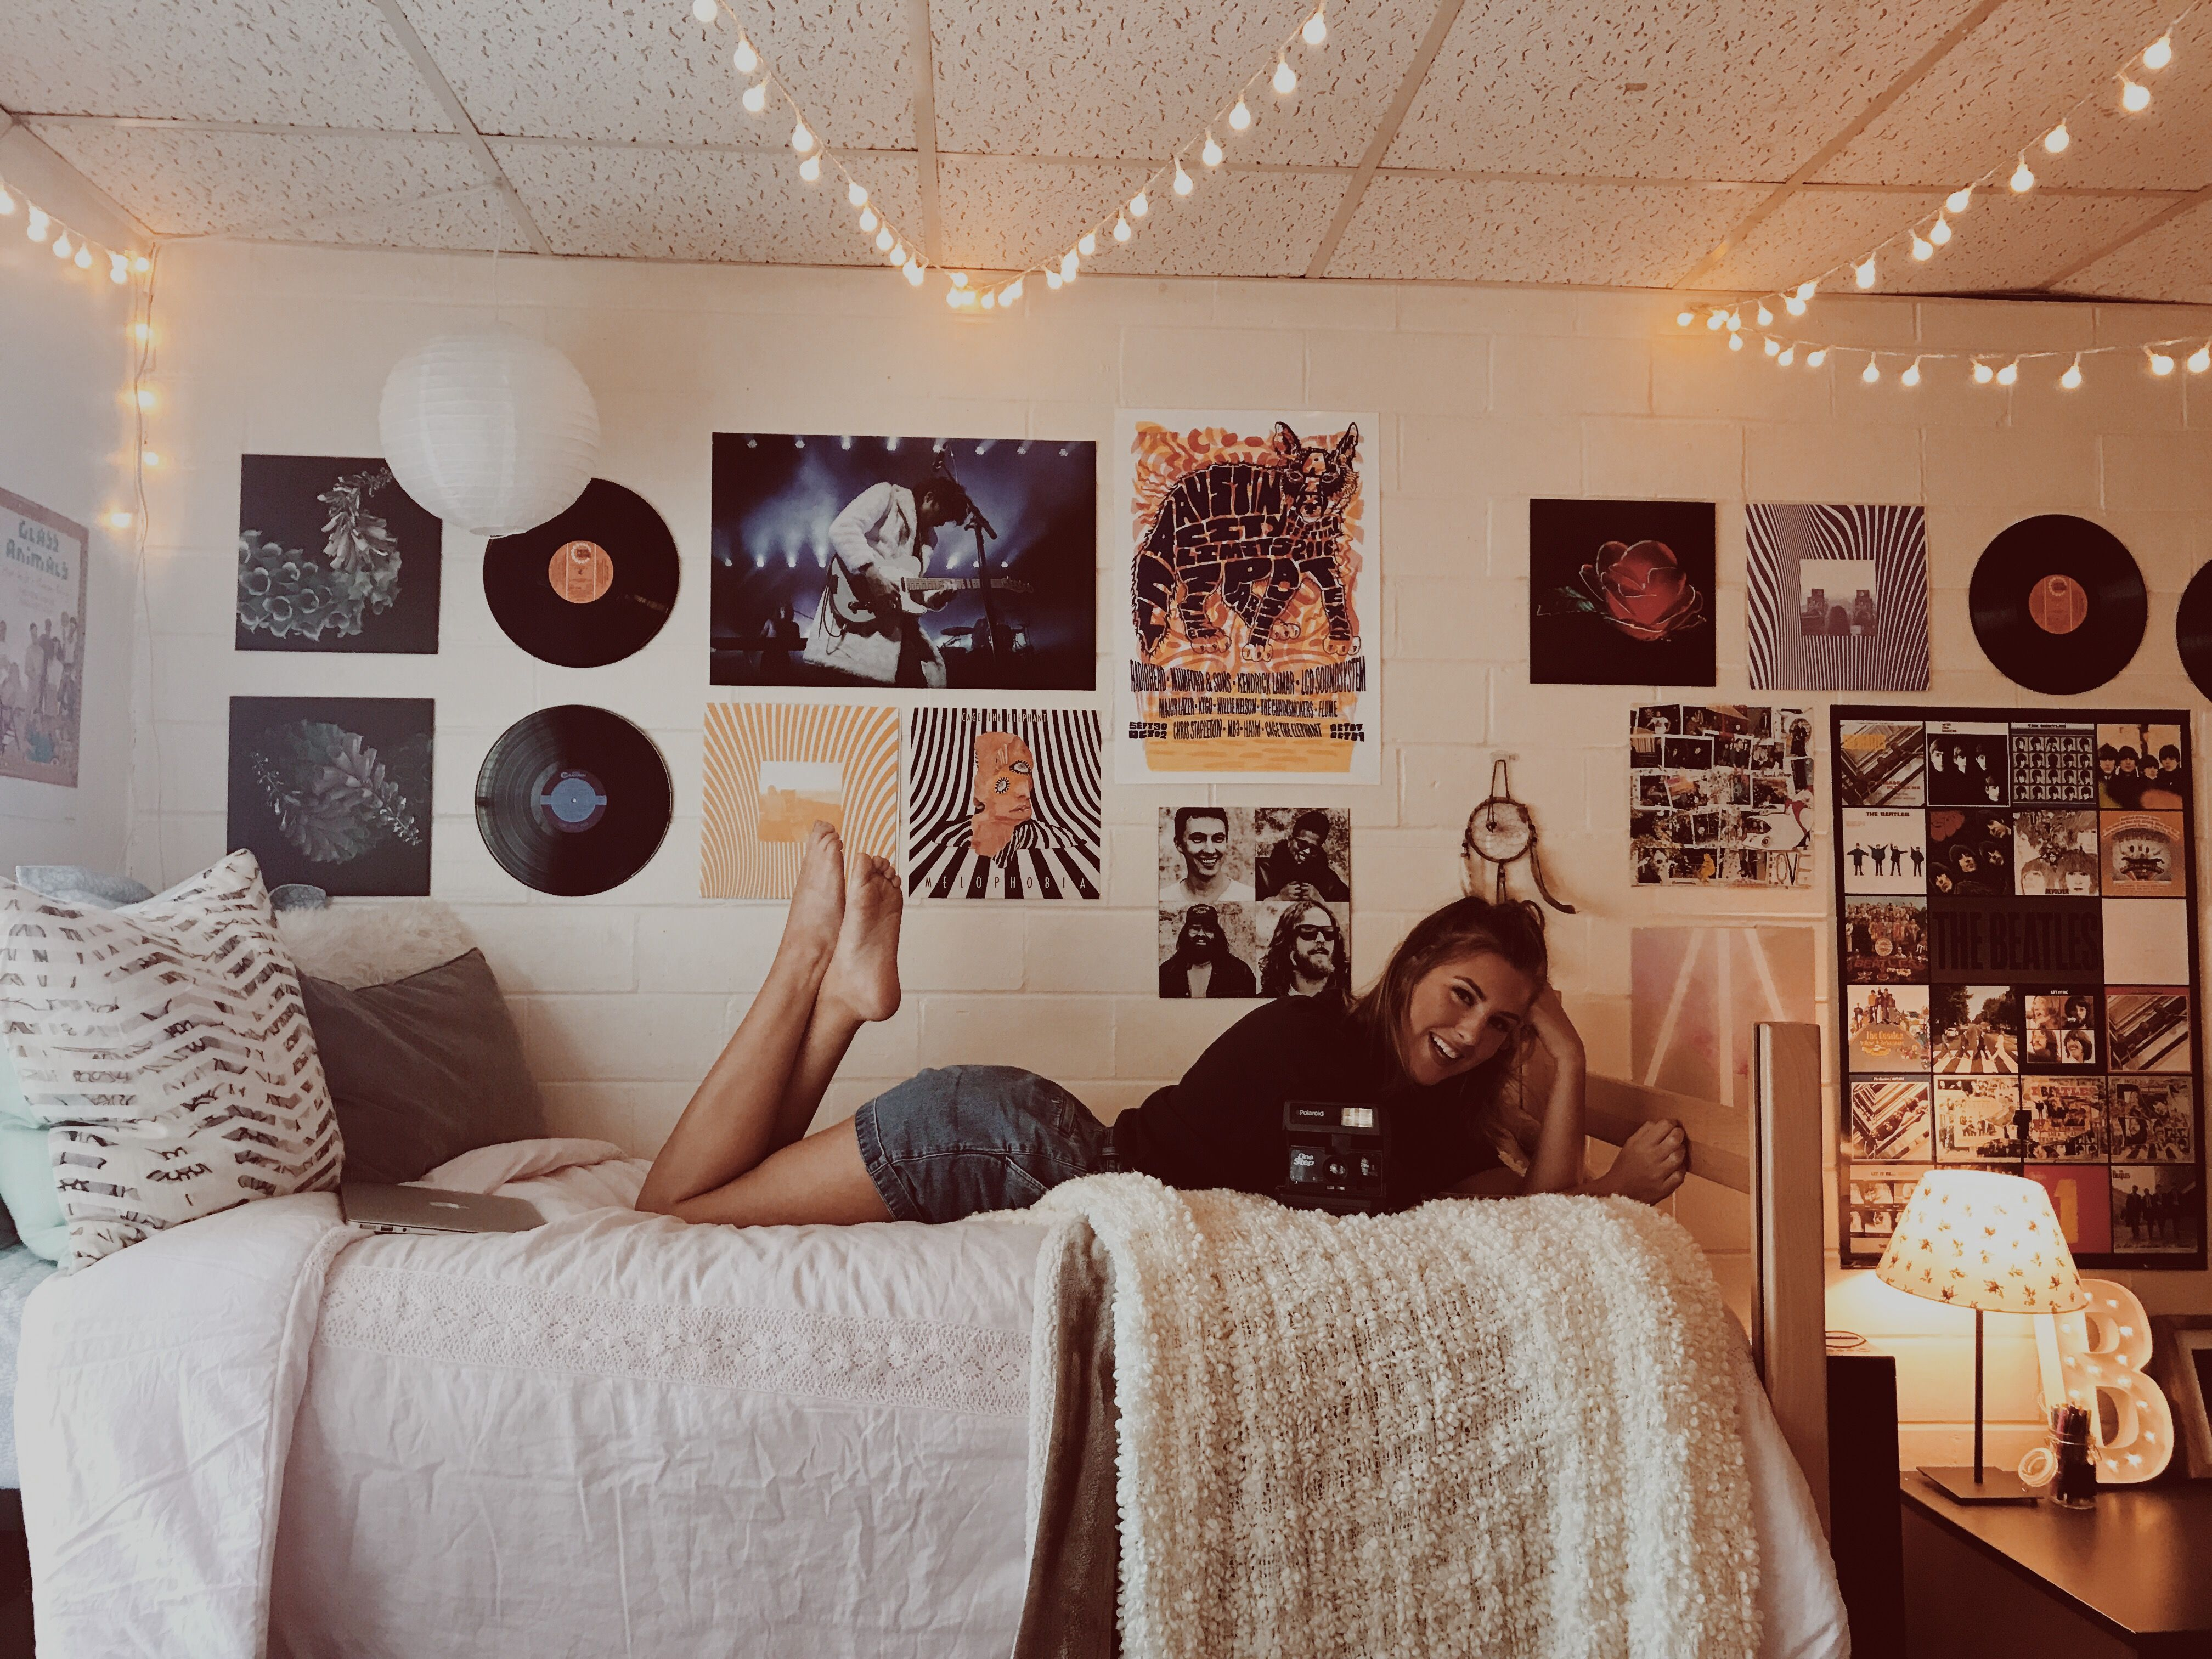 Best college dorm rooms fall 2018 greekrank - College dorm room ideas examples ...